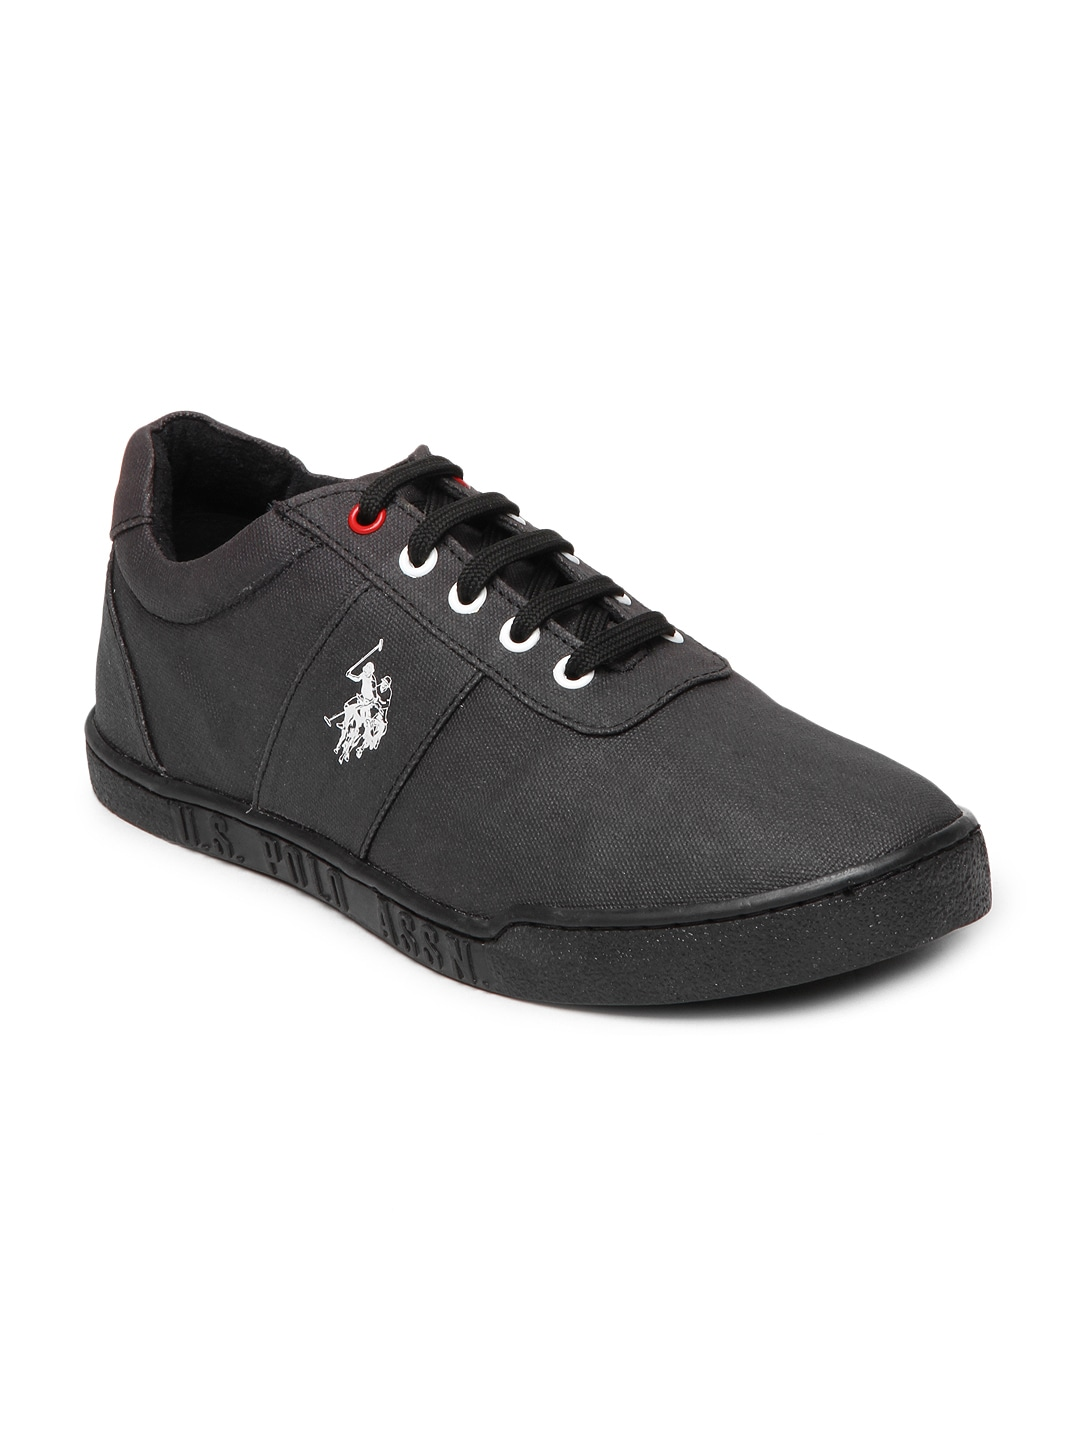 buy u s polo assn black casual shoes casual shoes